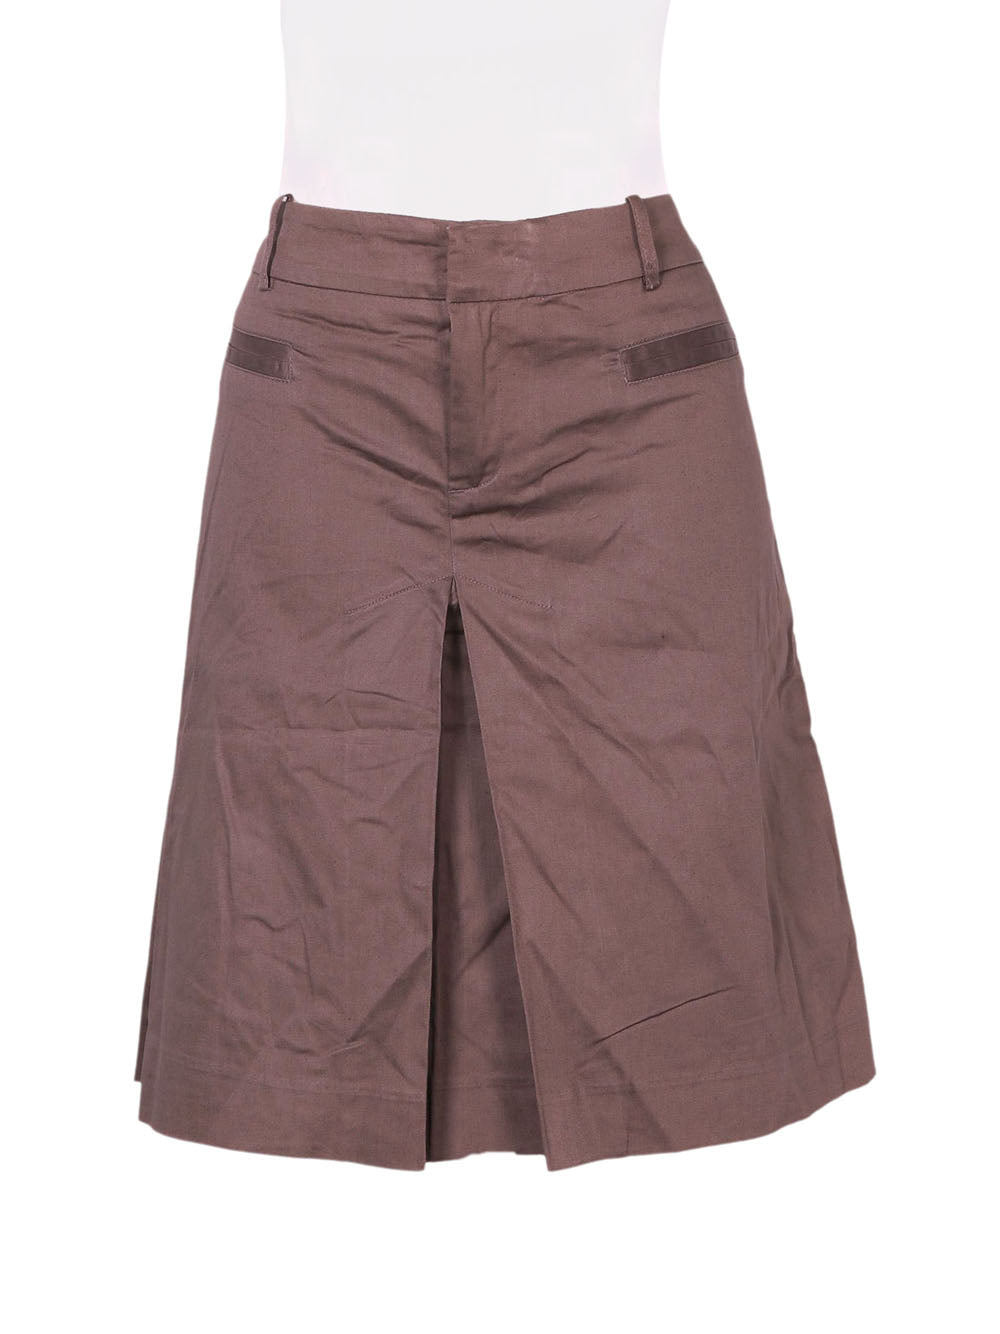 Front photo of Preloved Zara Grey Woman's skirt - size 12/L